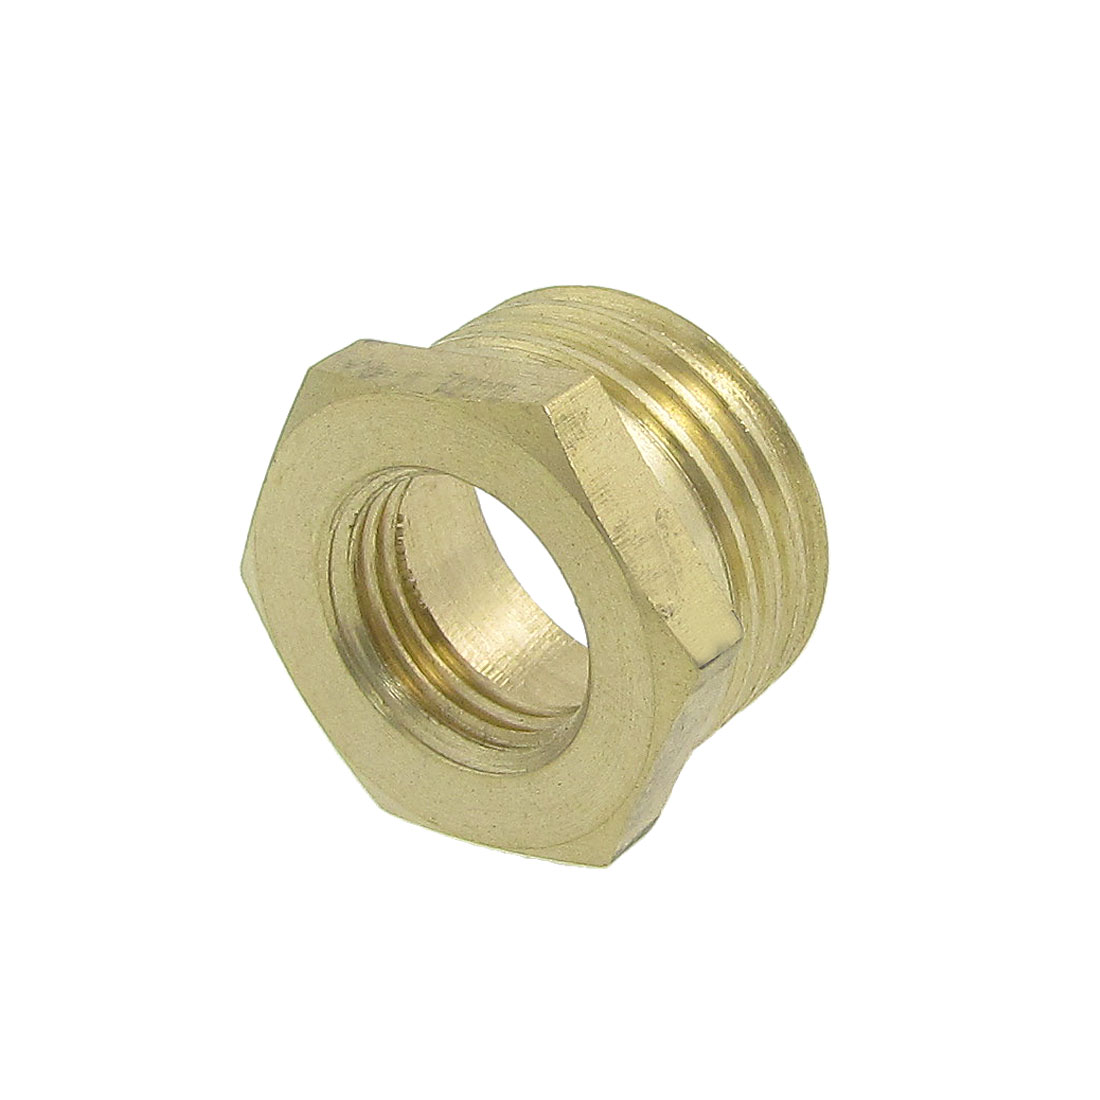 Pipe Reducer 20 x 12mm Brass Hex Bushing Connector